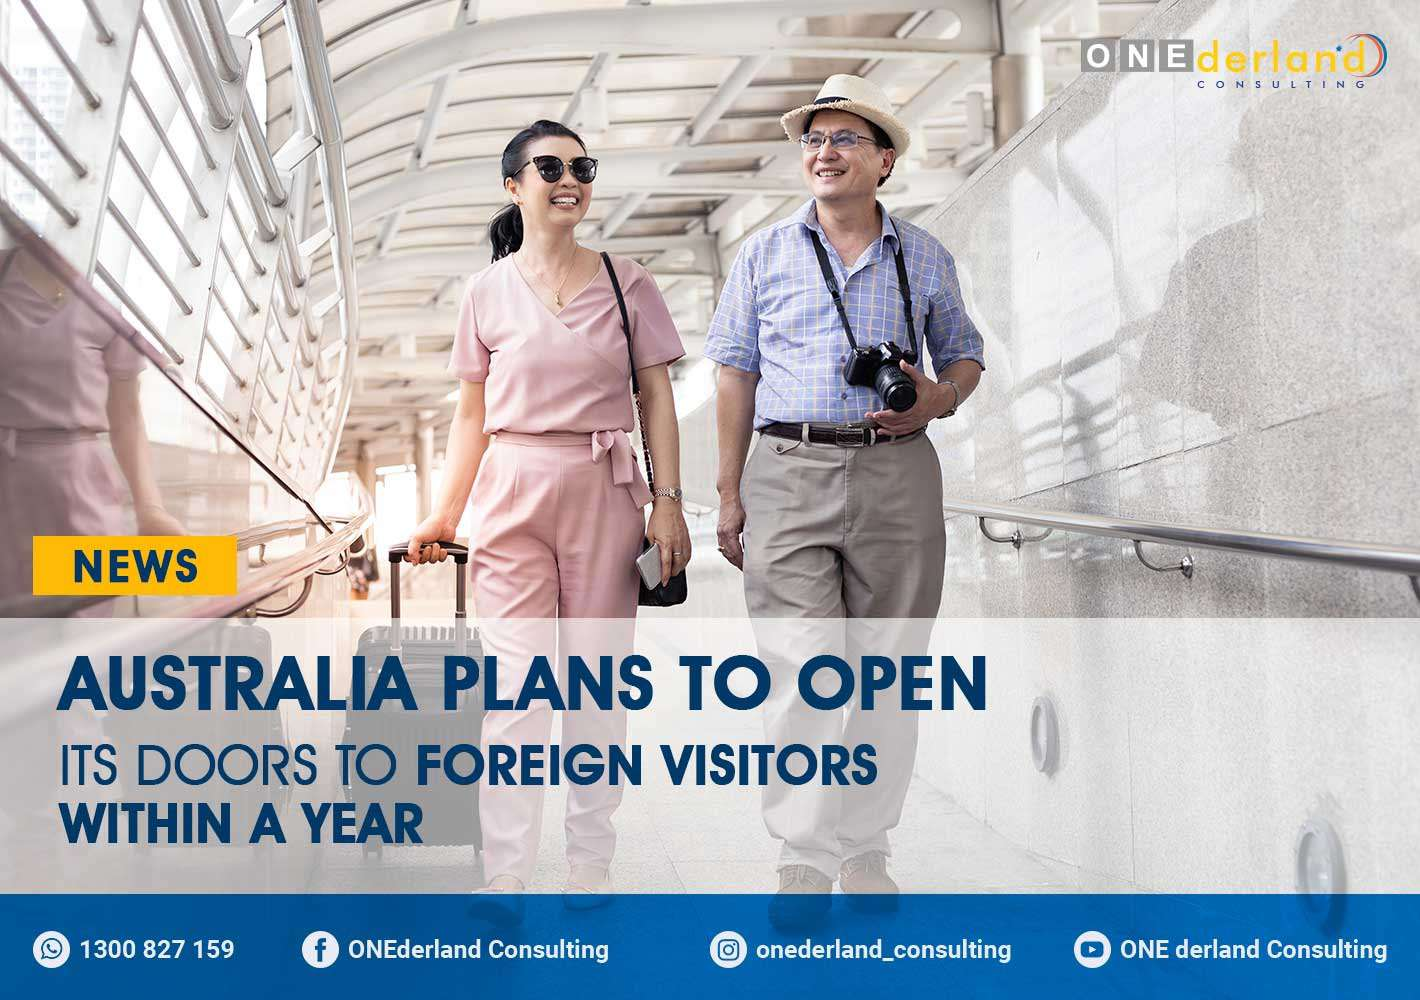 Australia Plans To Open Its Doors to Foreign Visitors Within A Year